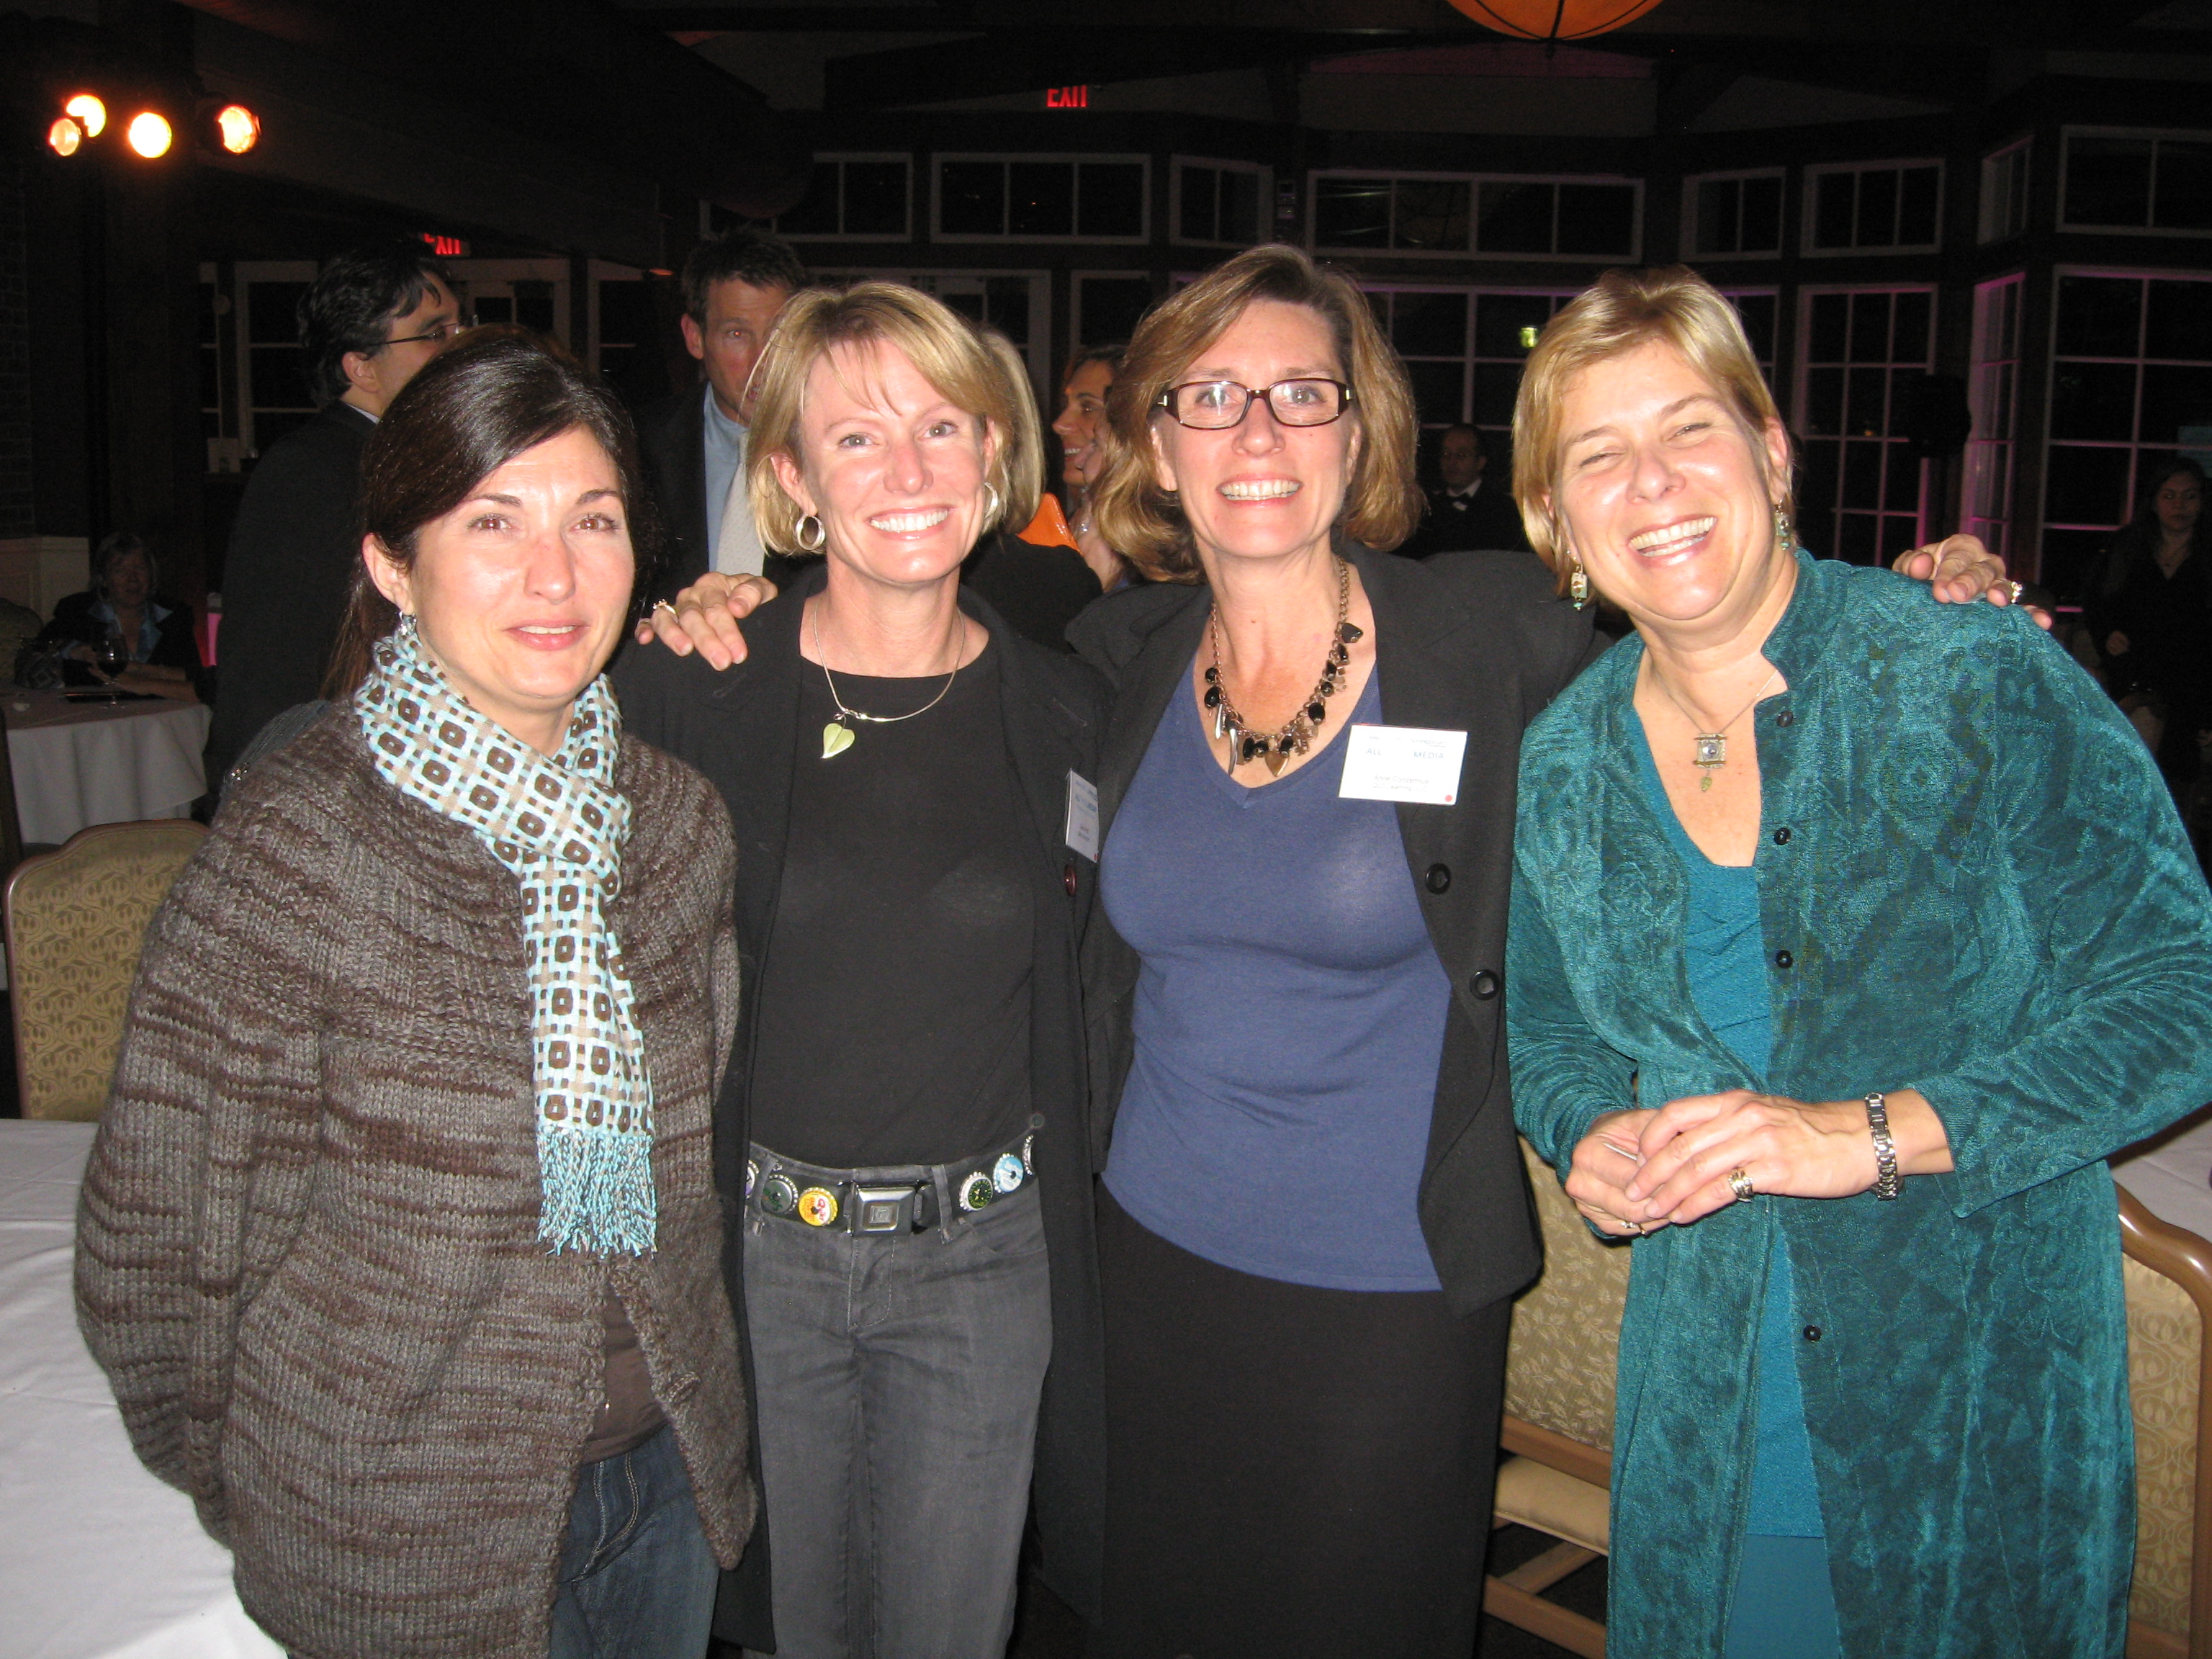 Joanne and me with Anne and Jan, the founders of QLD Learning at the fancy celebratory dinner.  Joanne and I were decidedly underdressed, but we had no idea that we were heading to such a shindig.  (And it is hard to get us out of jeans in the best of circumstances anyway.)